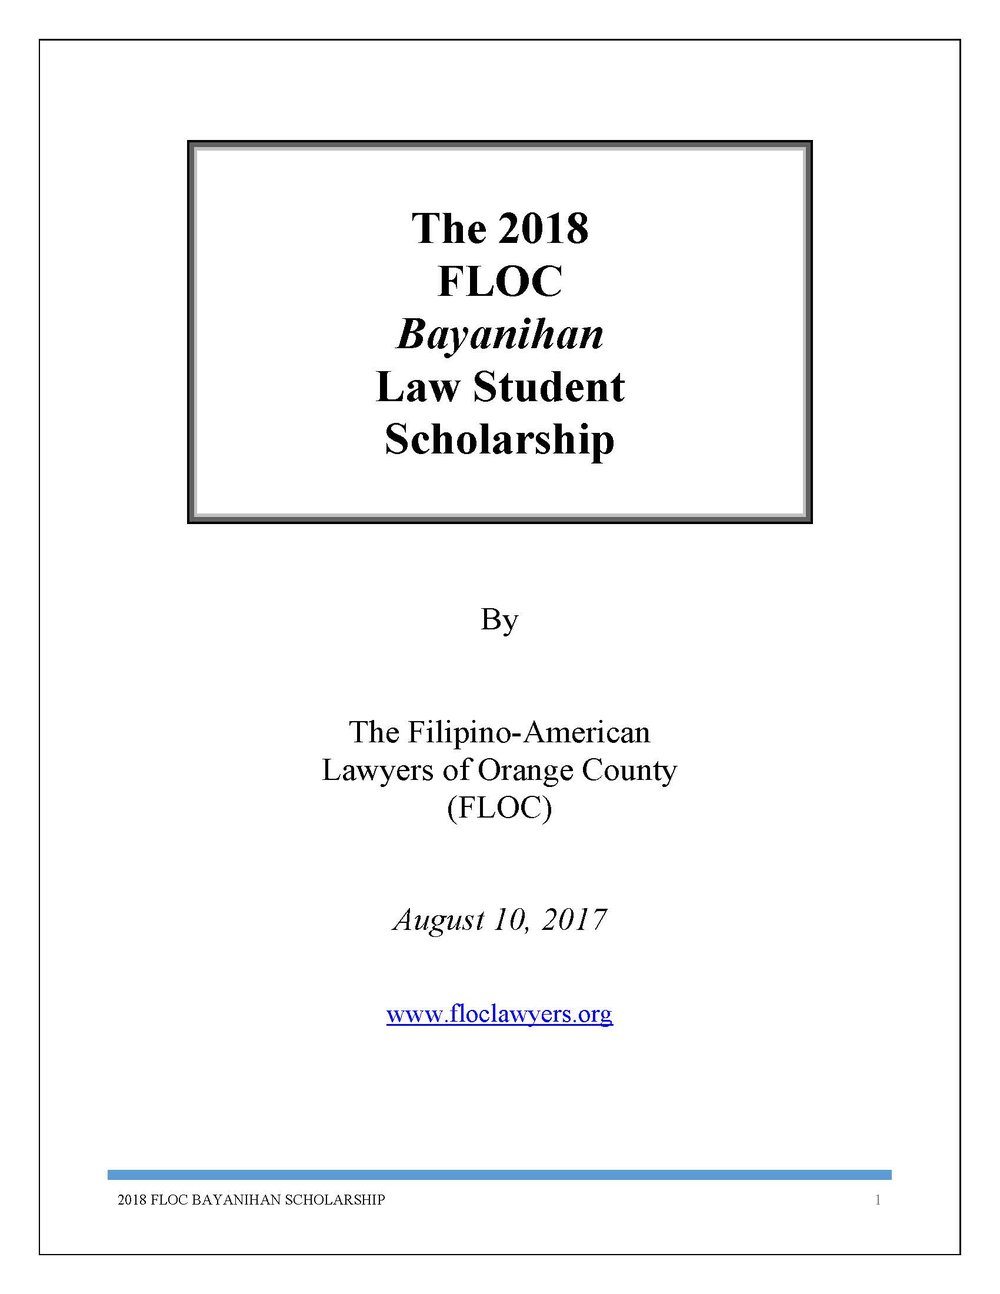 2018 FLOC Scholarship Program pg 1.jpg